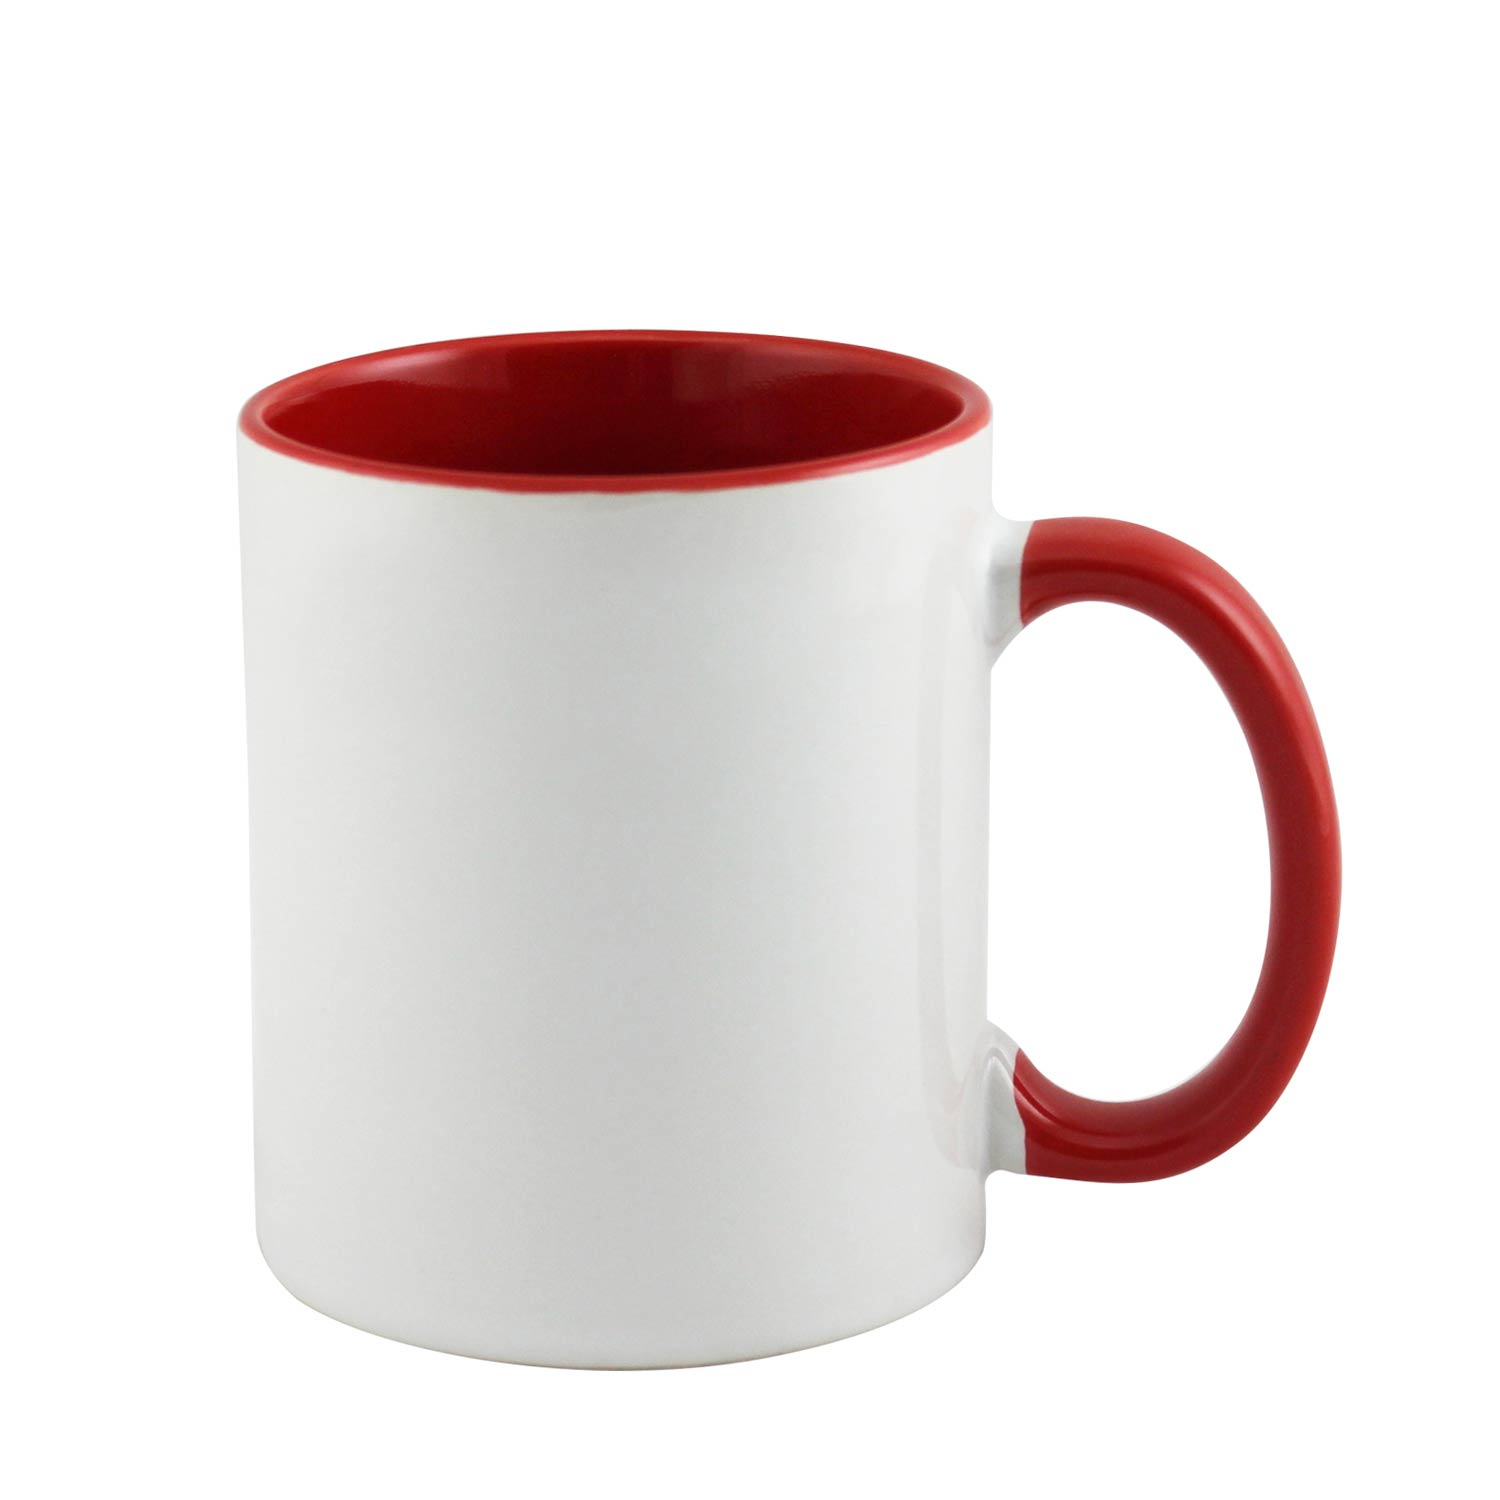 Red Travel Mug With Handle